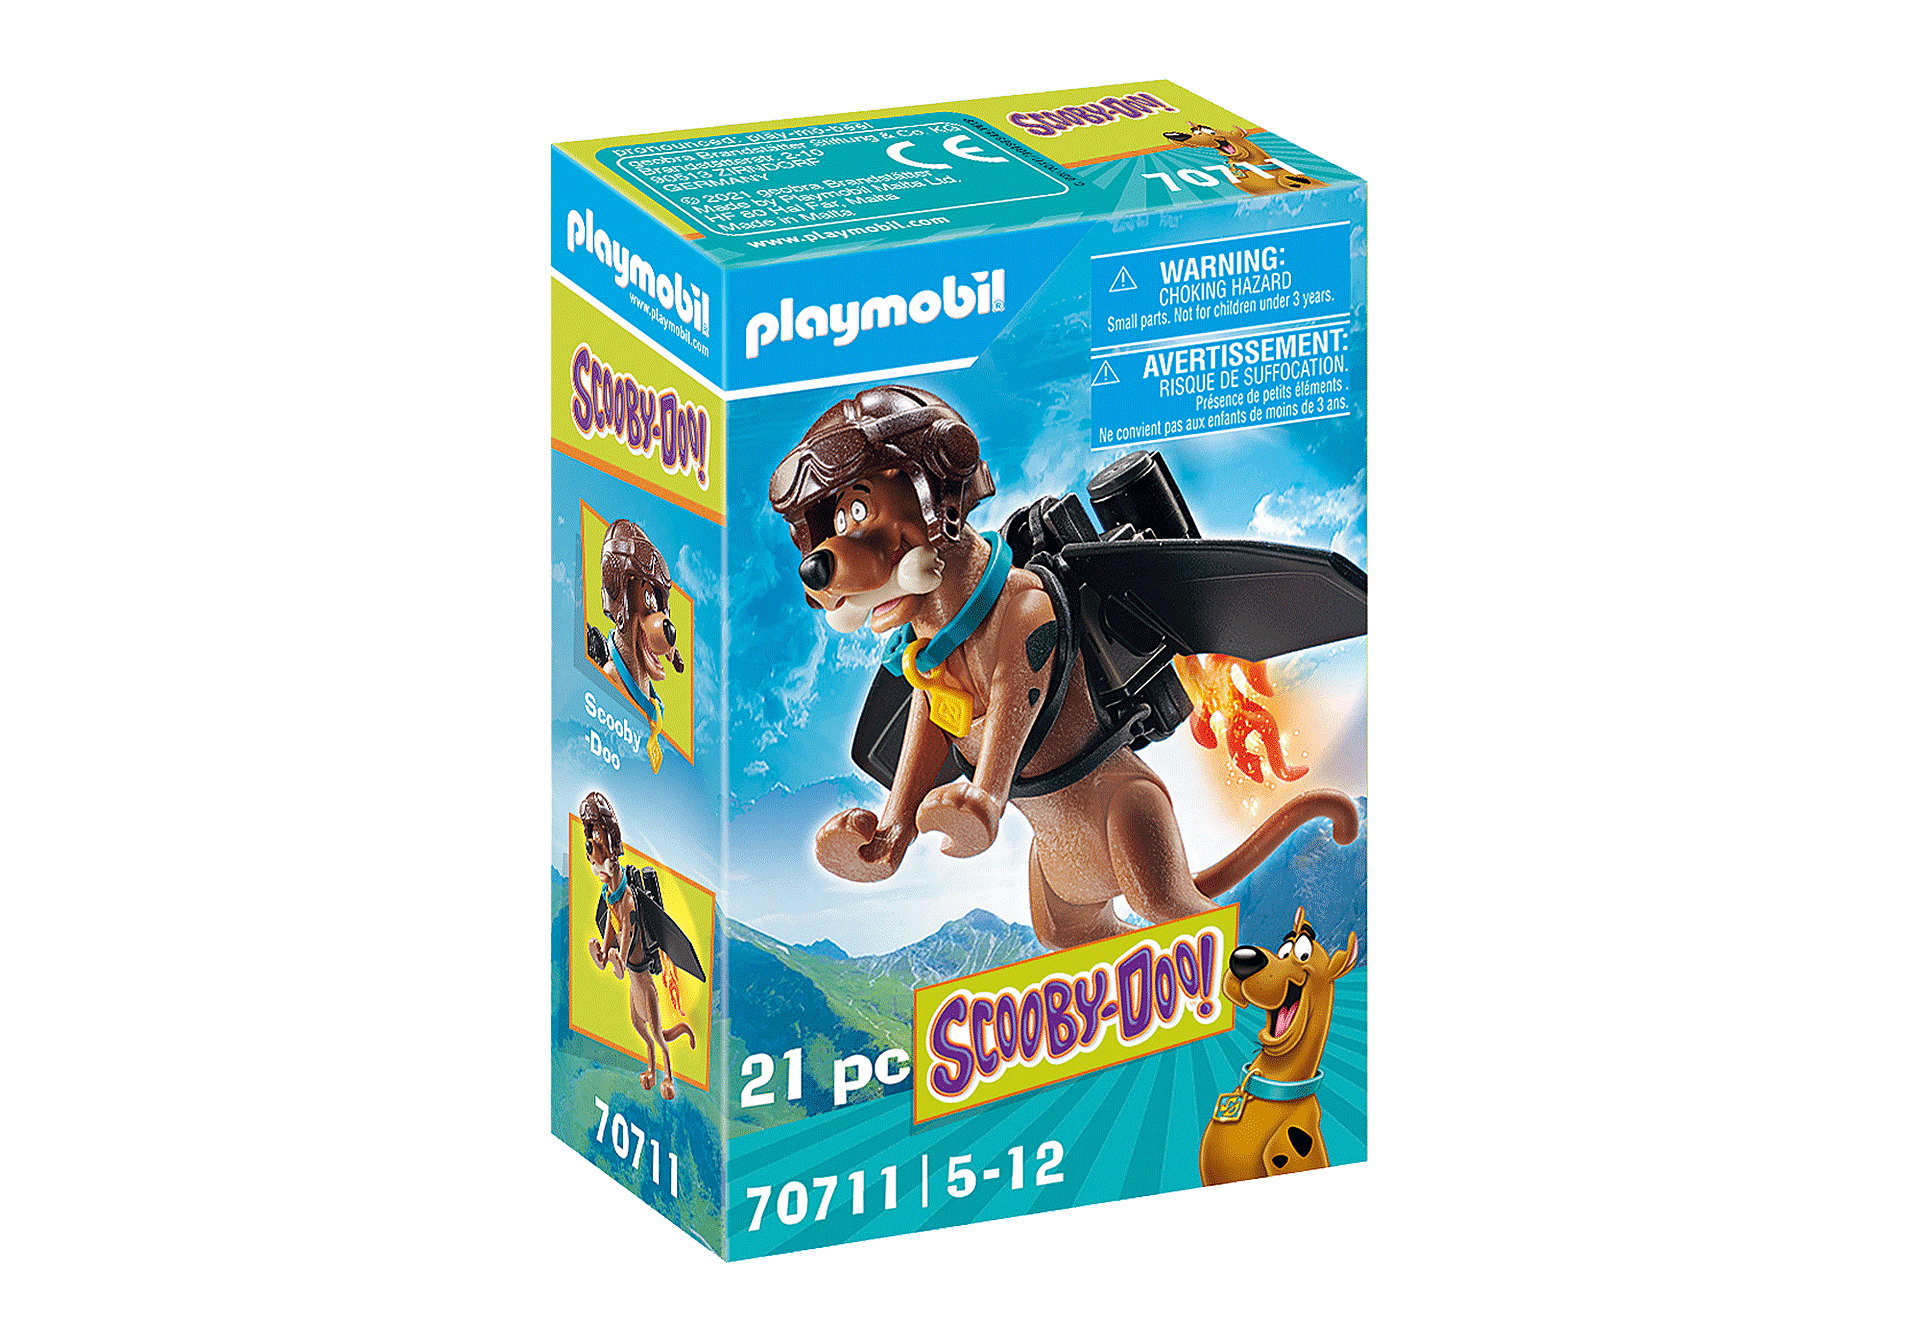 70711 SCOOBY-DOO! Scooby con jet pack zoom image3